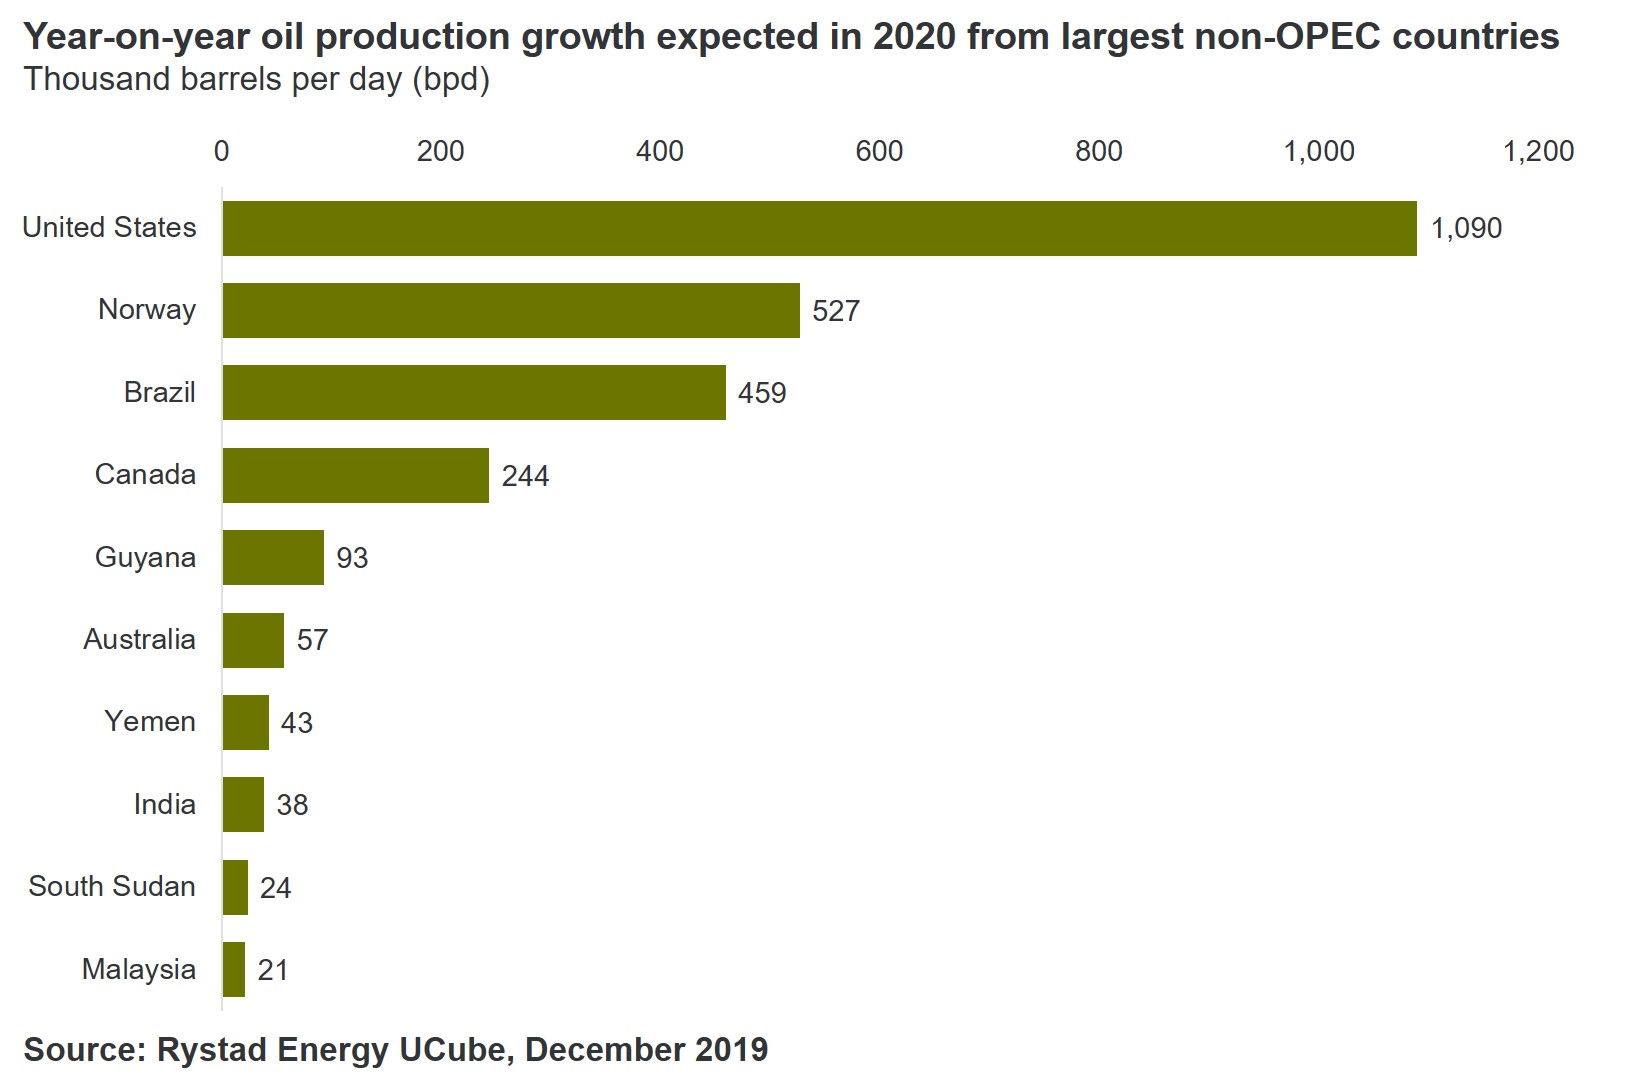 20191203_PR Chart 2 Non OPEC production growth 2020.jpg